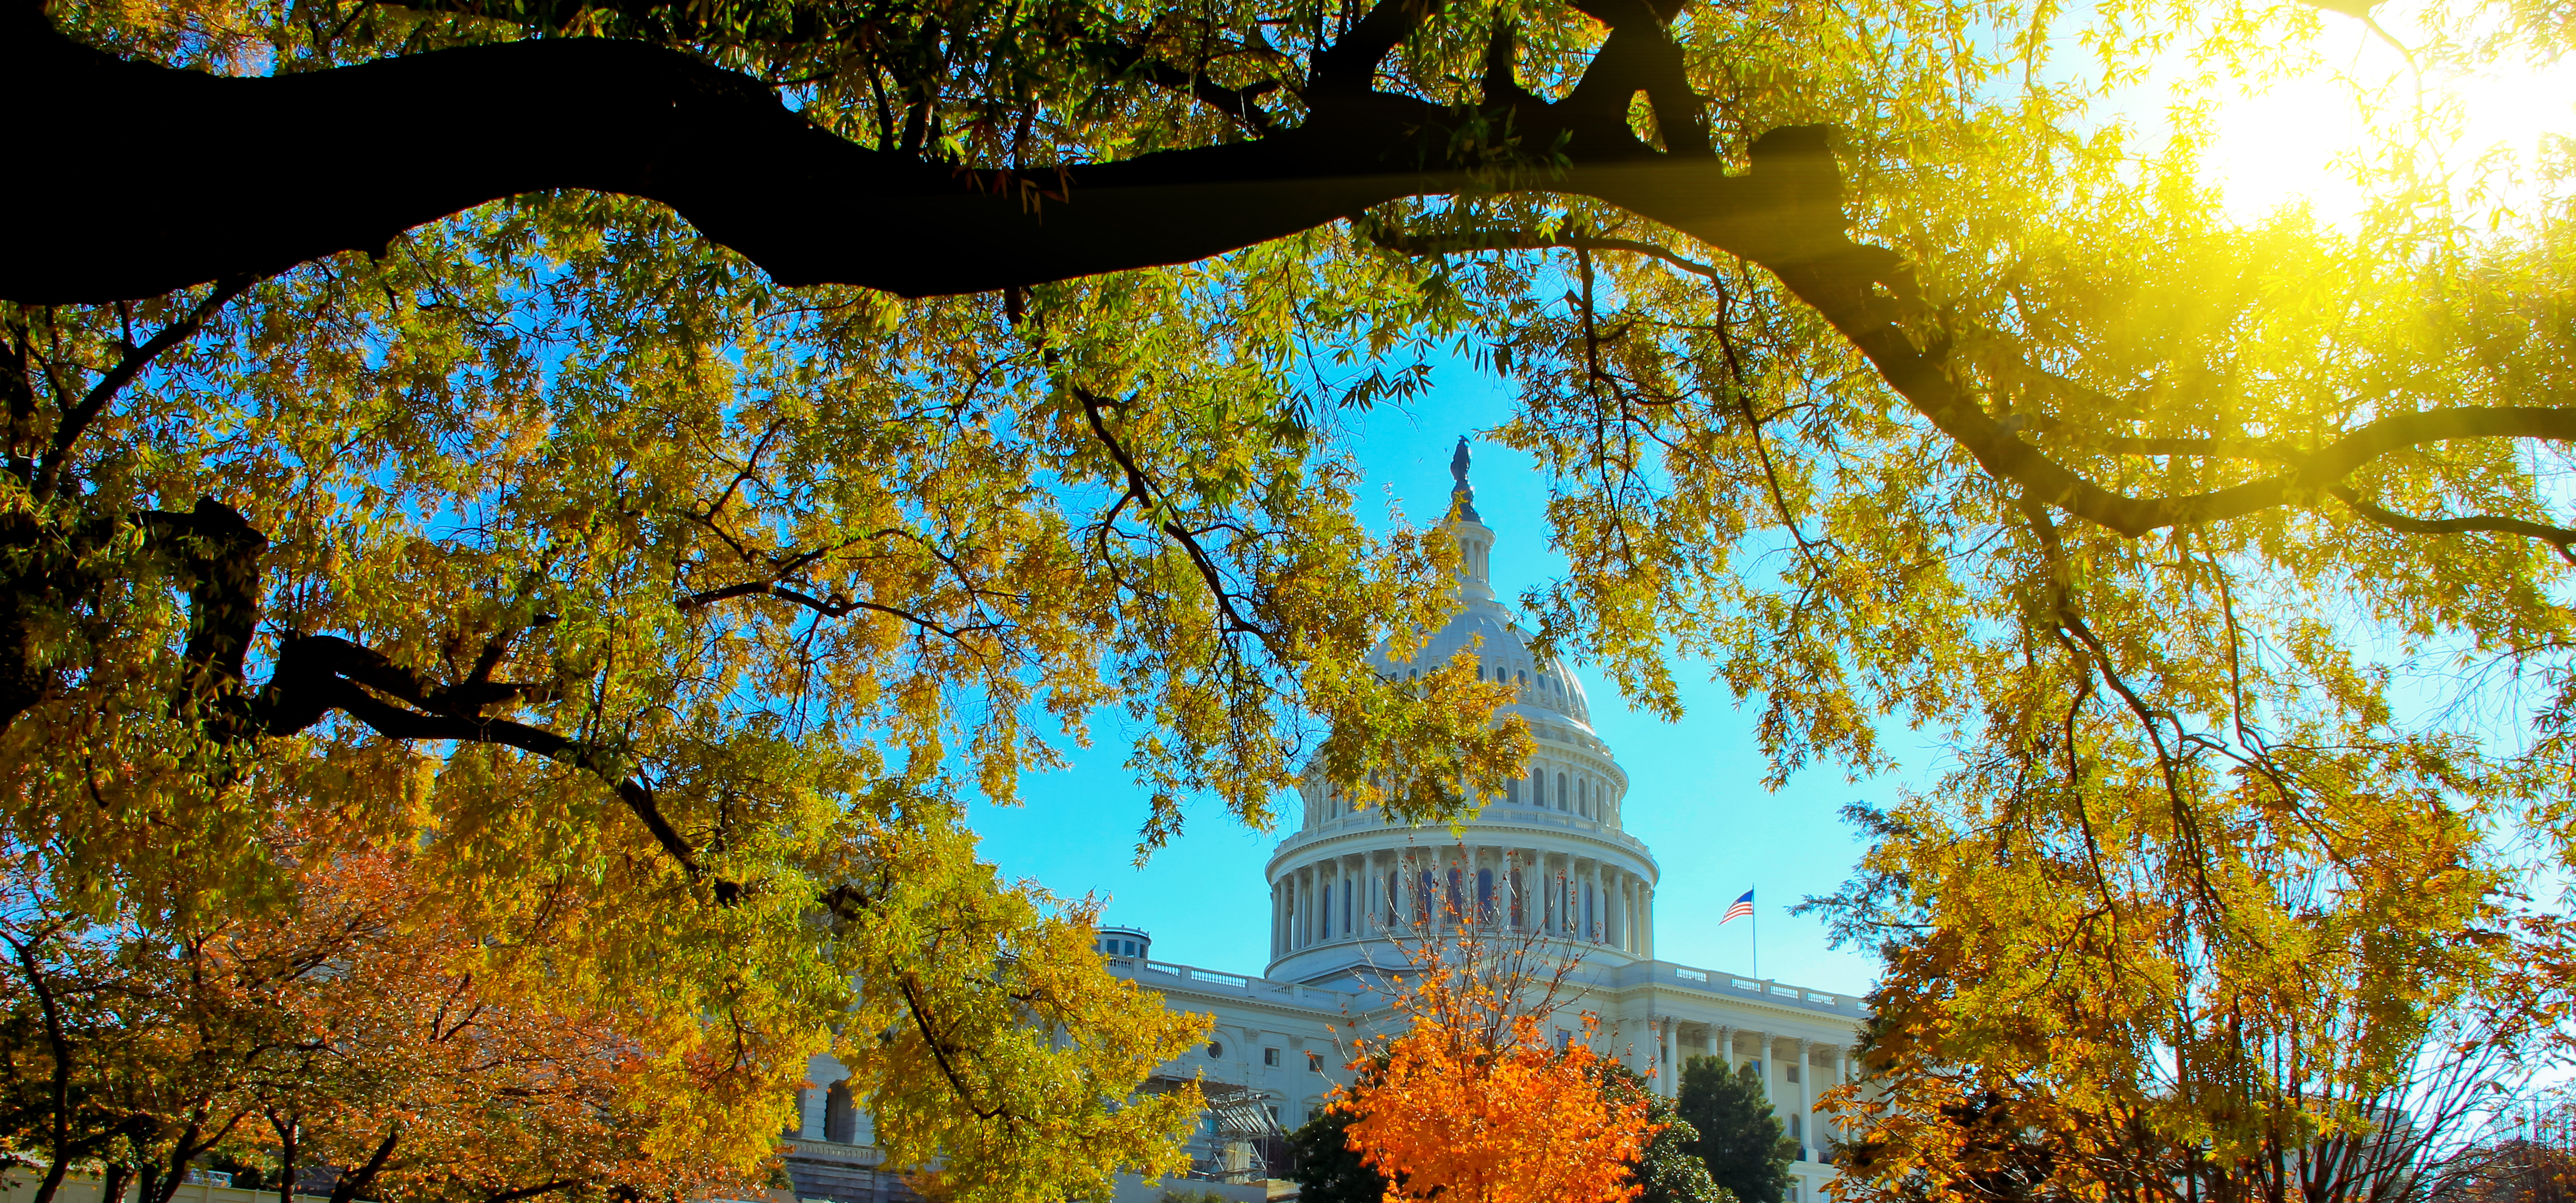 US Capital Building with sunlight in Autumn, Washington, DC.